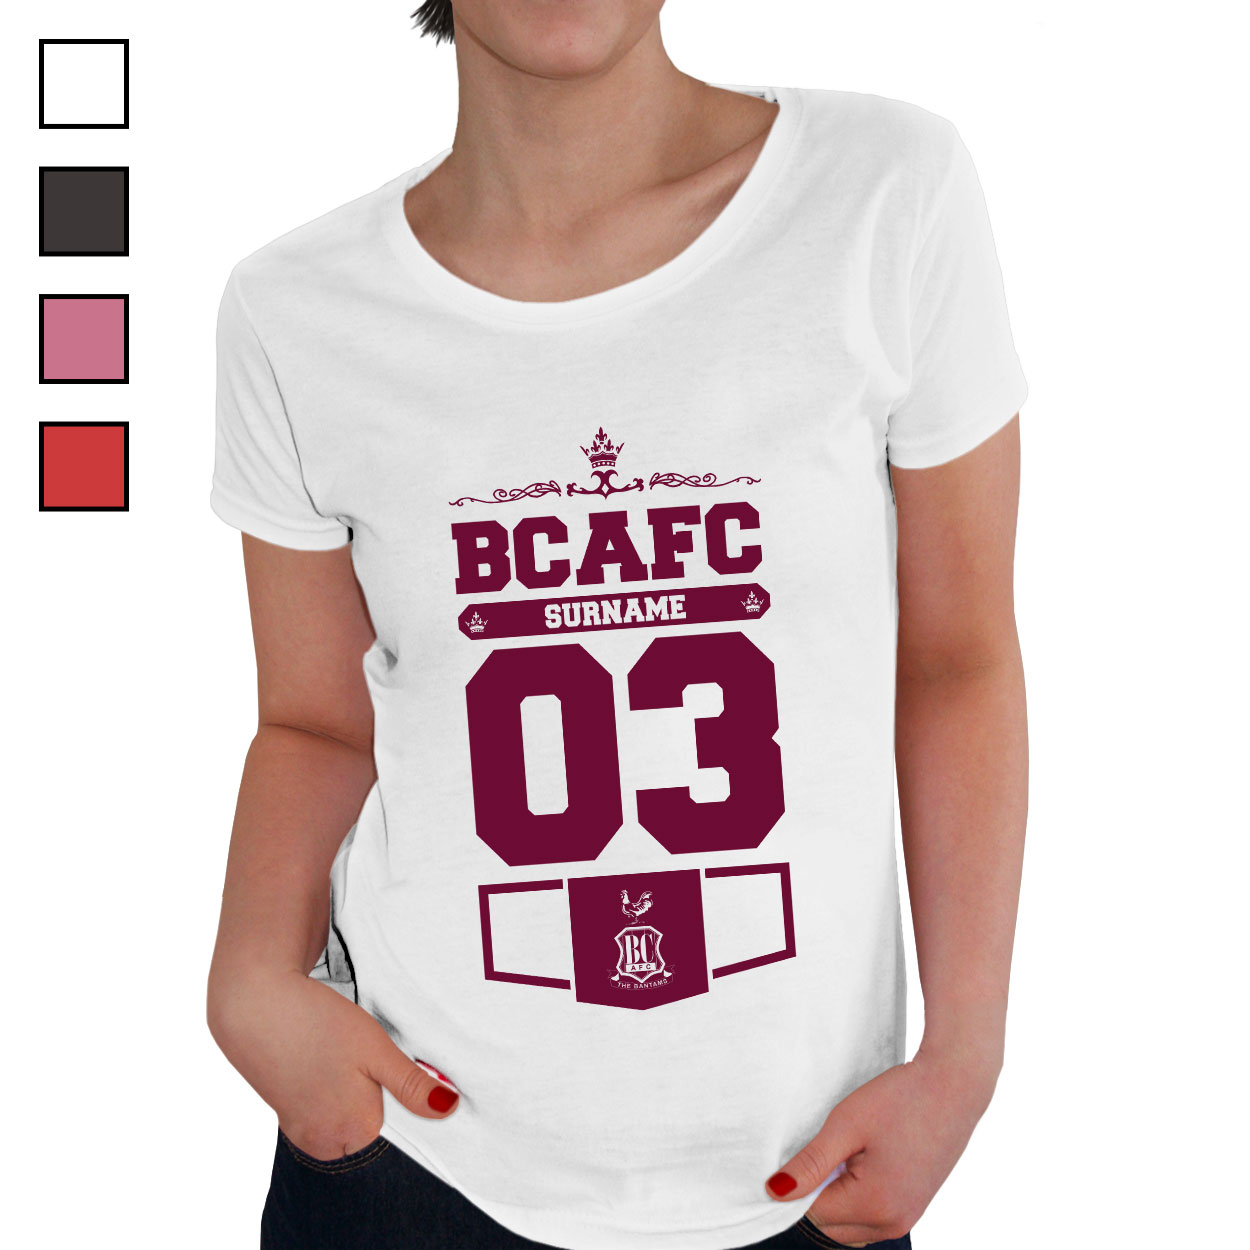 Bradford City AFC Ladies Club T-Shirt